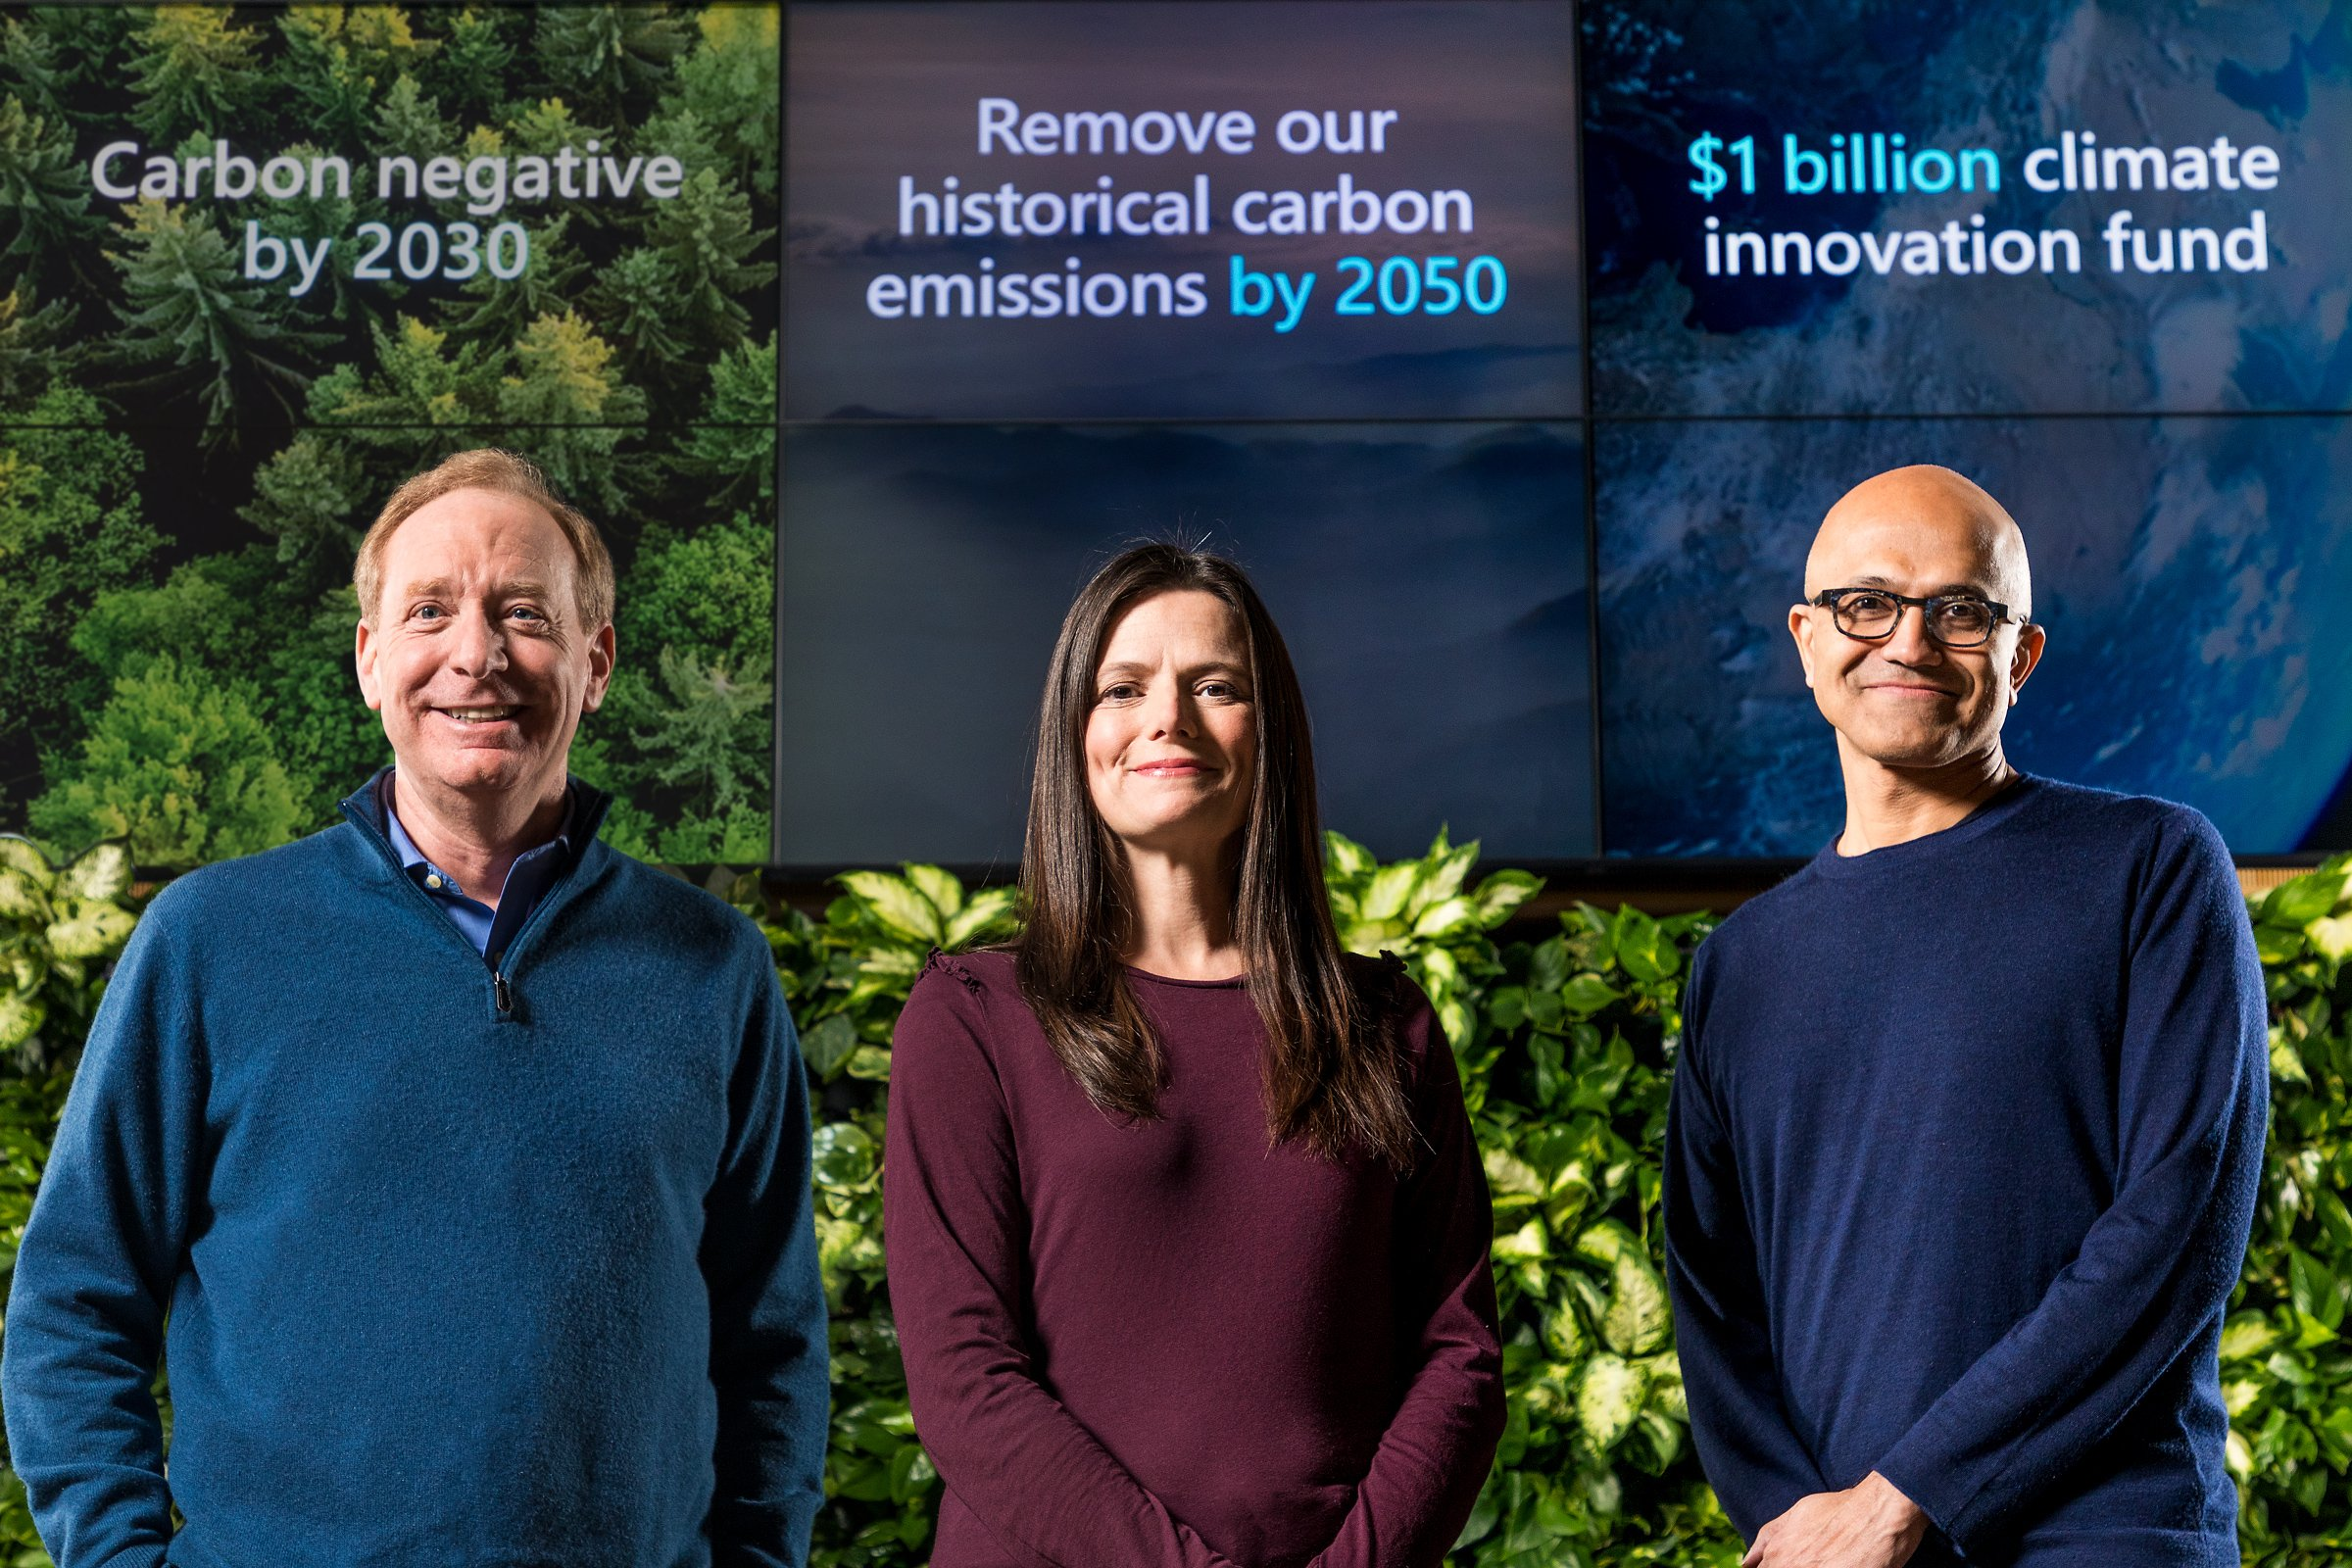 Microsoft President said company will be carbon negative by 2030